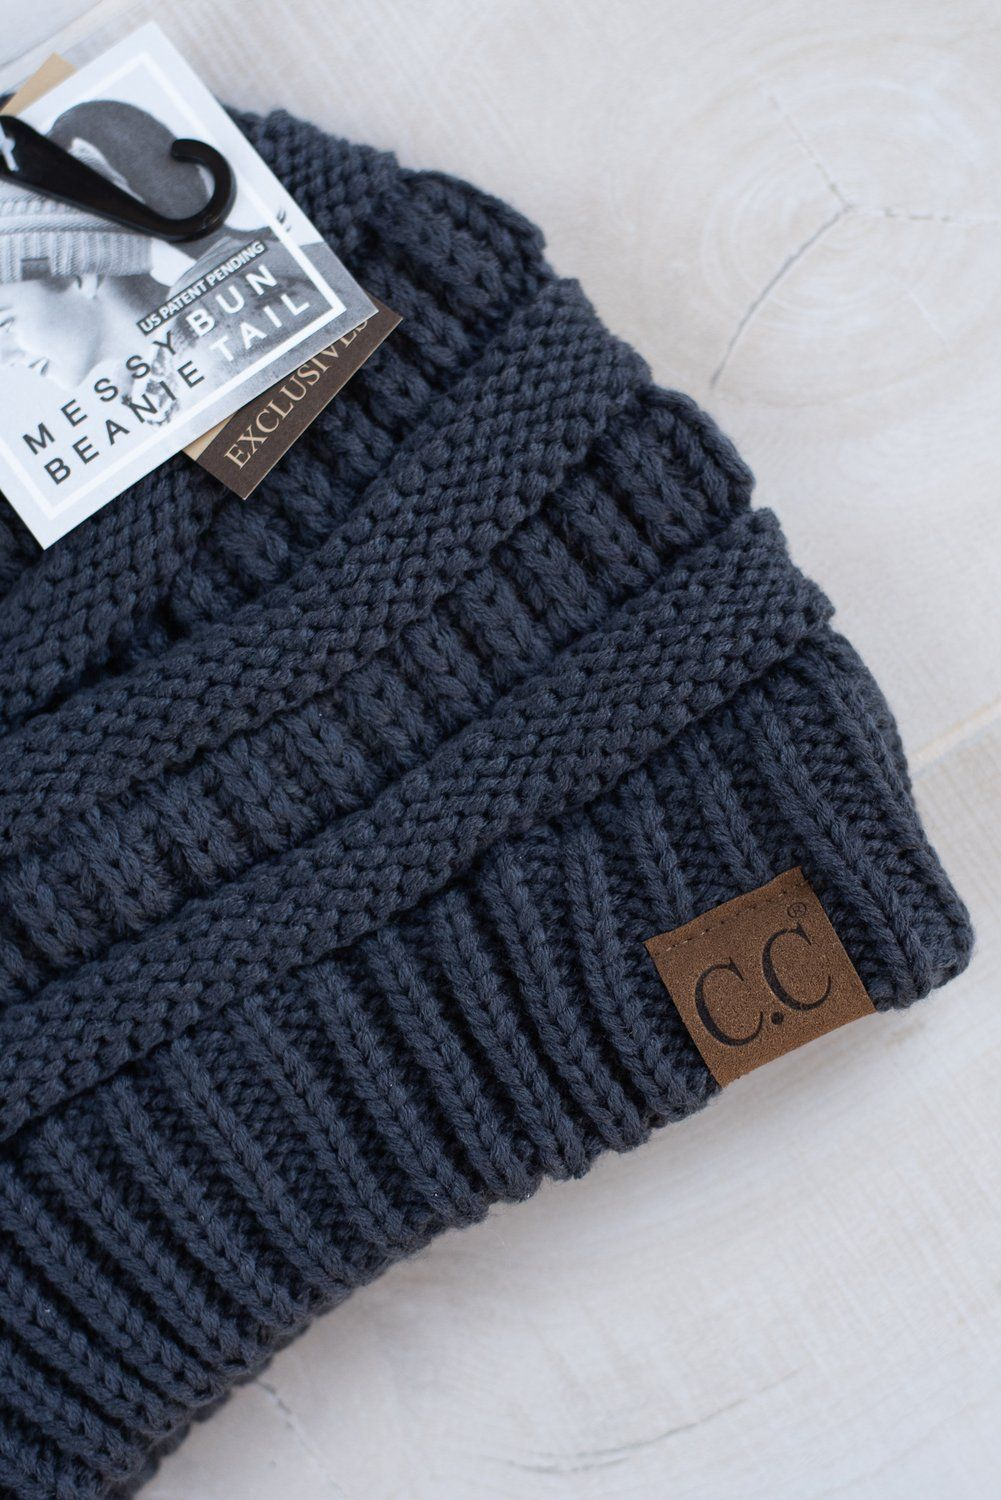 01921e872a9 C.C. Ponytail Beanie ~ Dark Grey available at J. Lilly s Boutique or  jlillysboutique.com